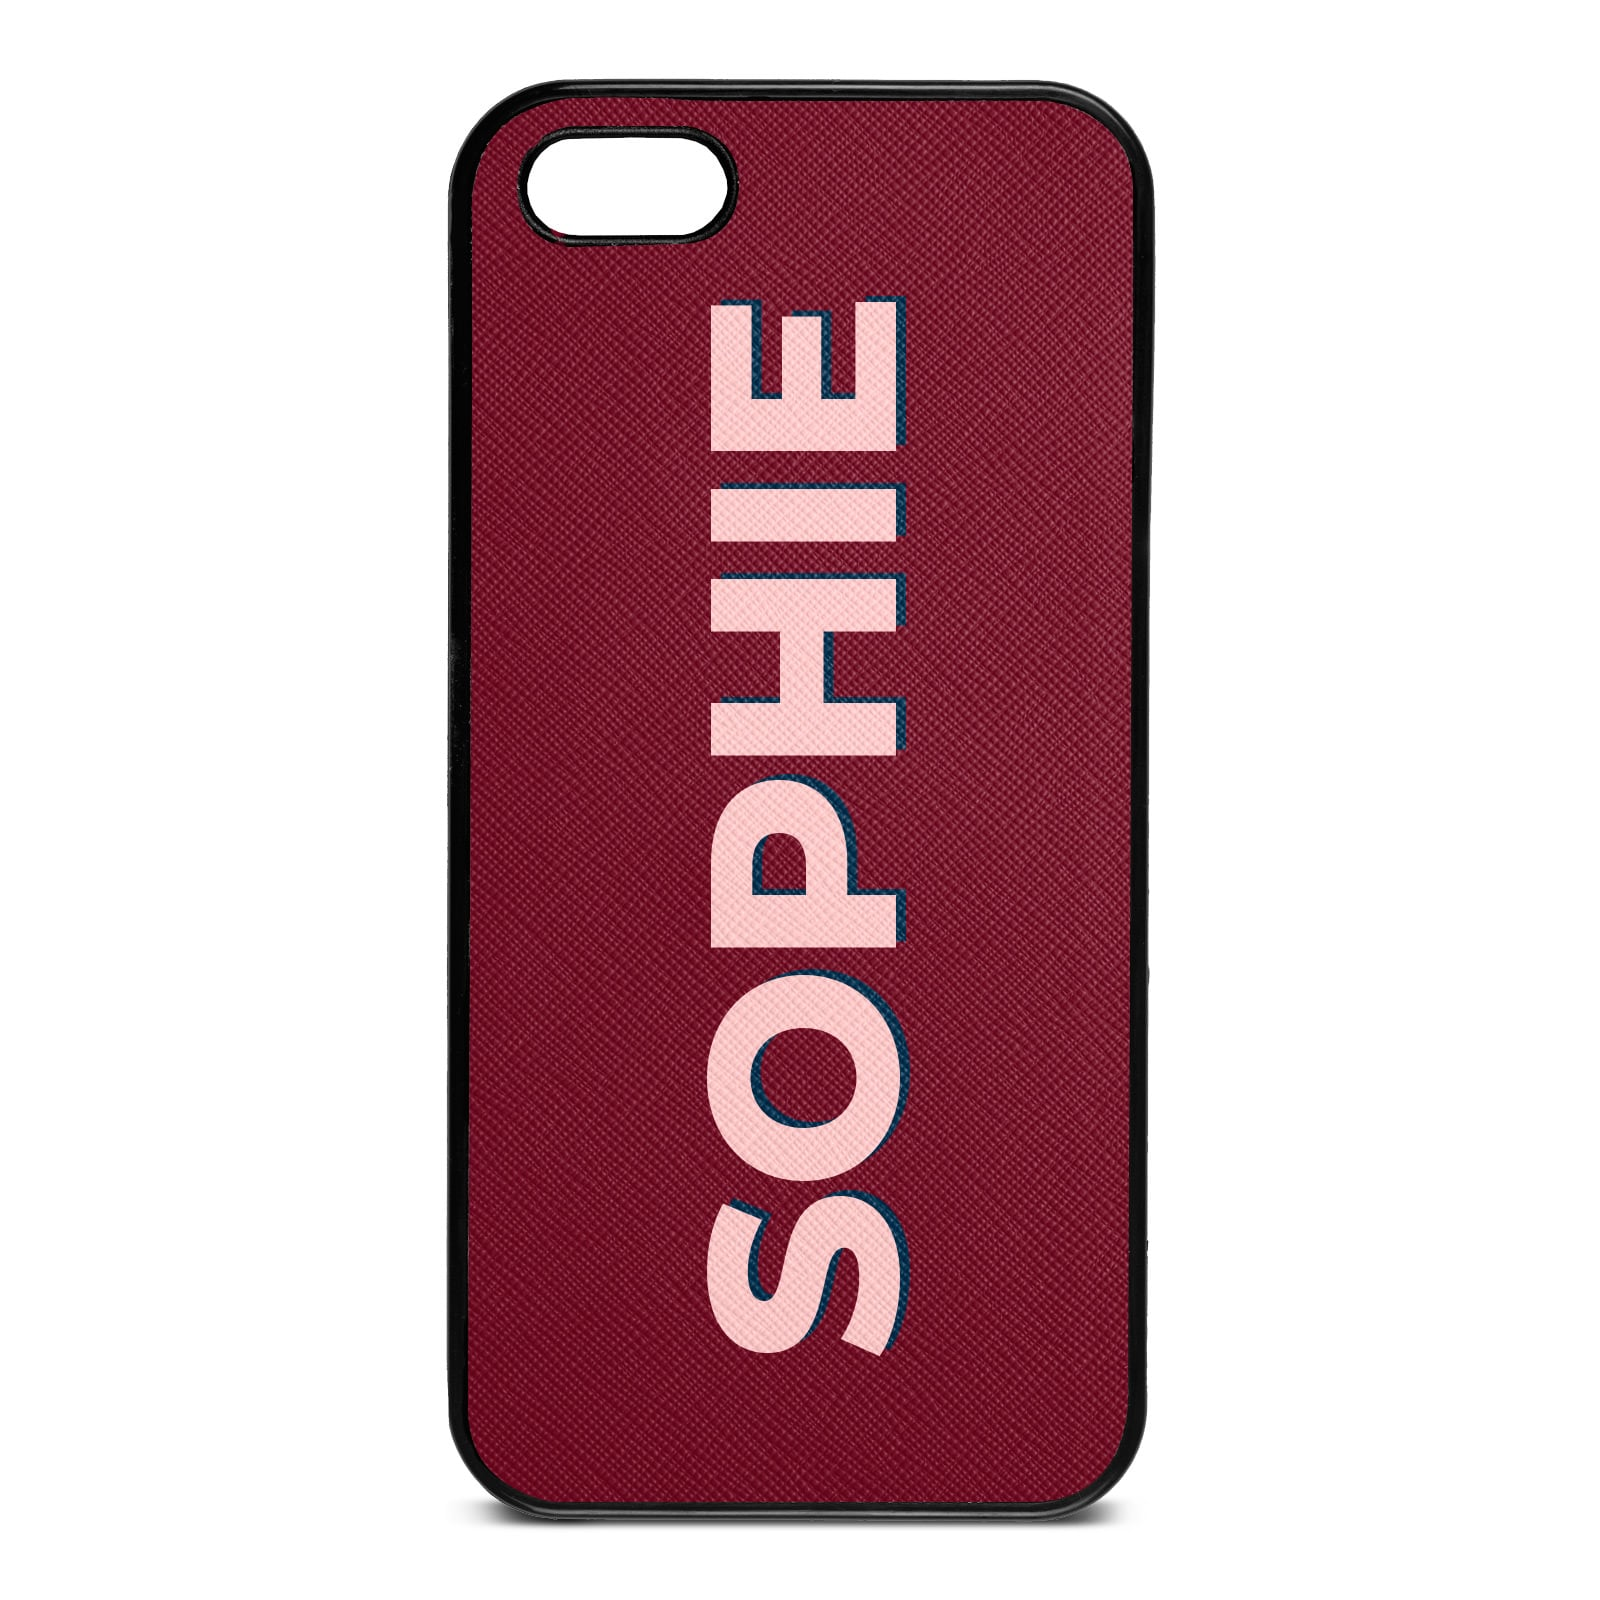 Personalised Dark Red Saffiano Leather iPhone 5 Case